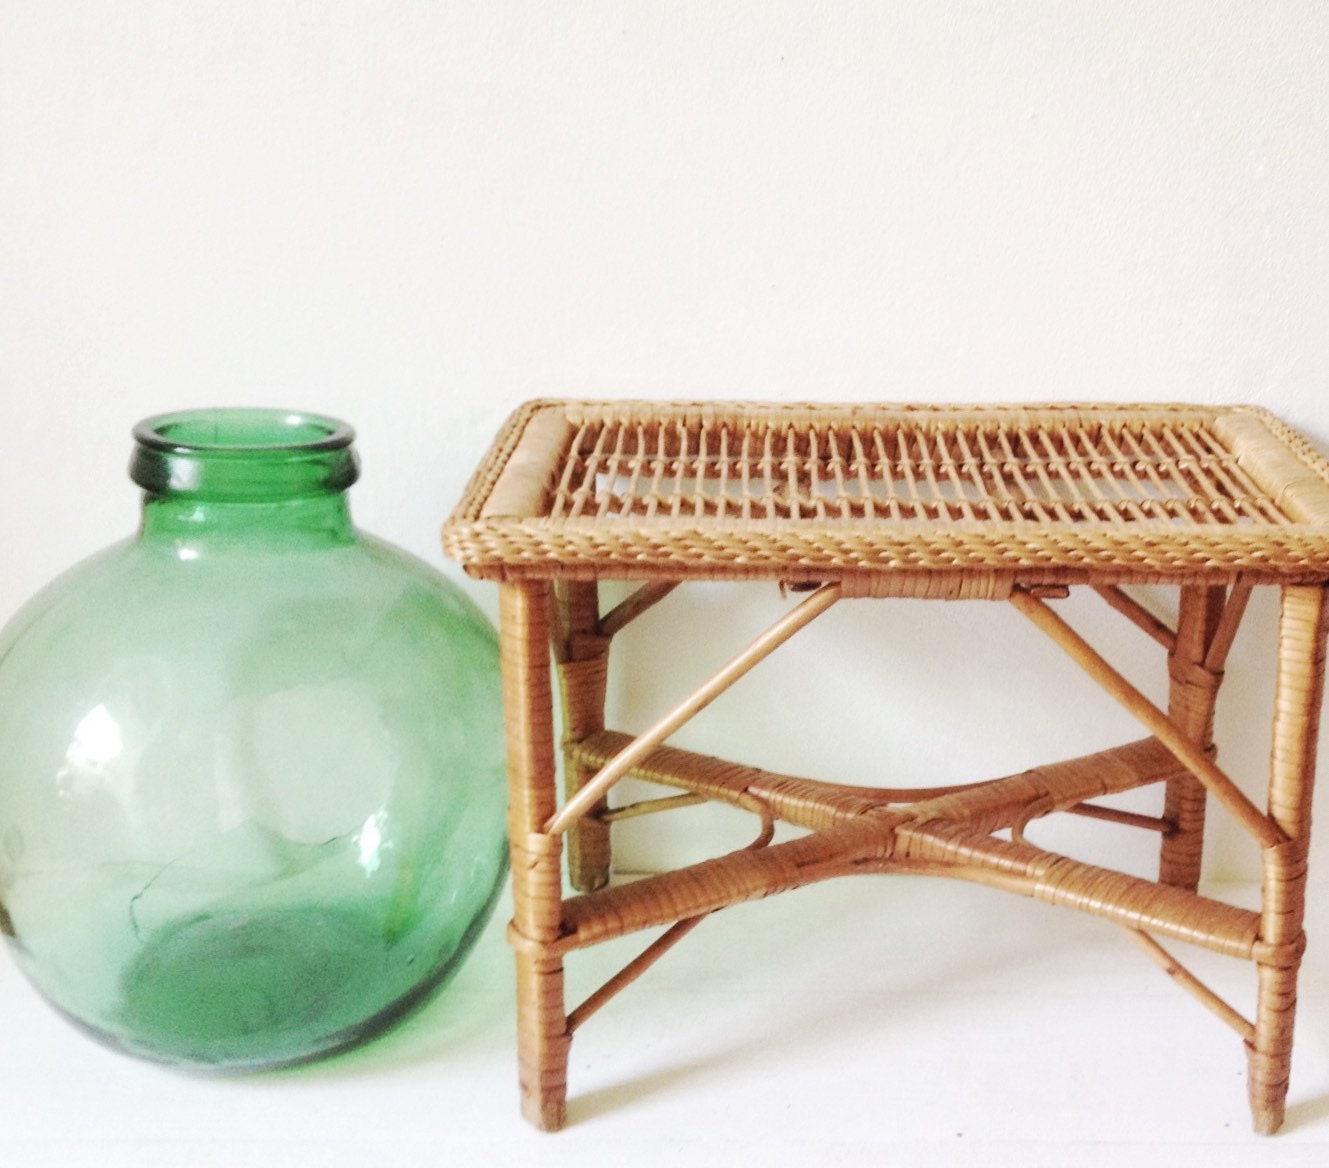 Bamboo Plant On Table: Vintage Bamboo Plant Stand Or Low Table